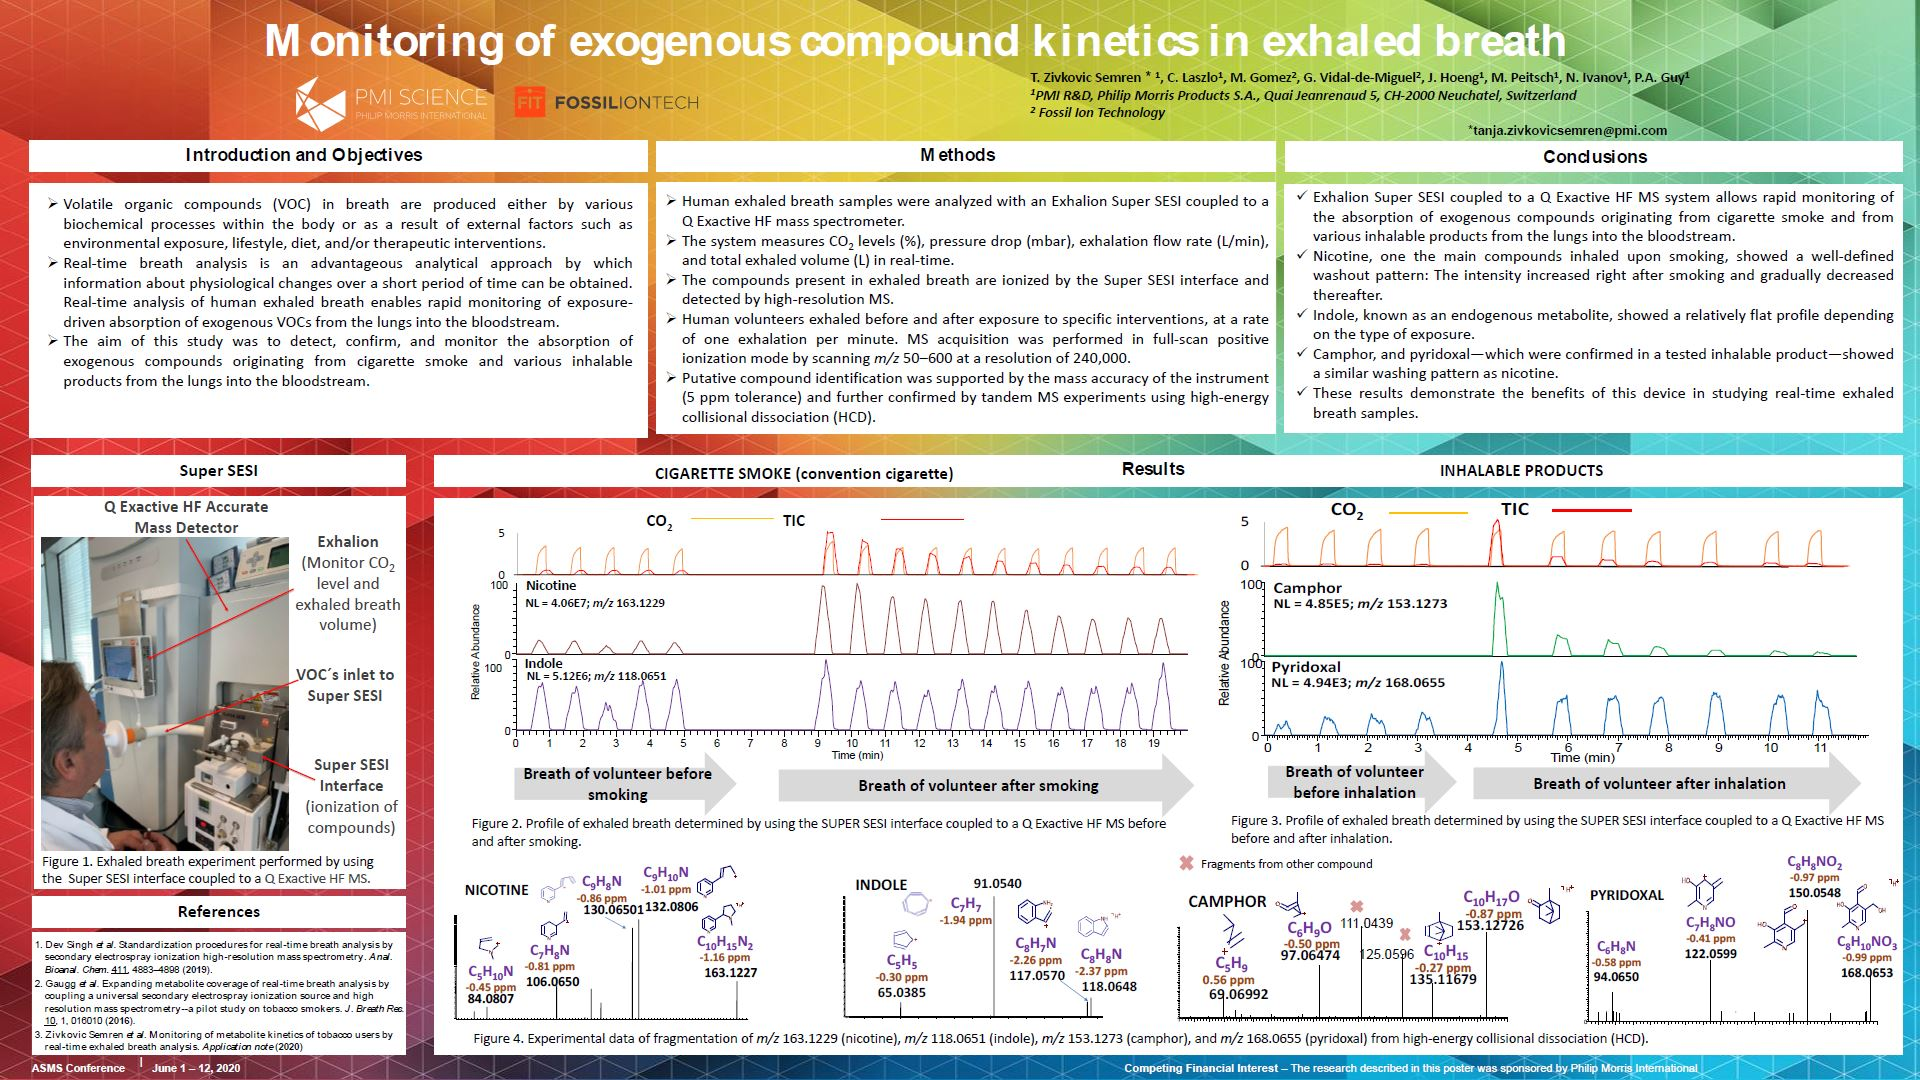 Monitoring of exogenous compound kinetics in exhaled breath